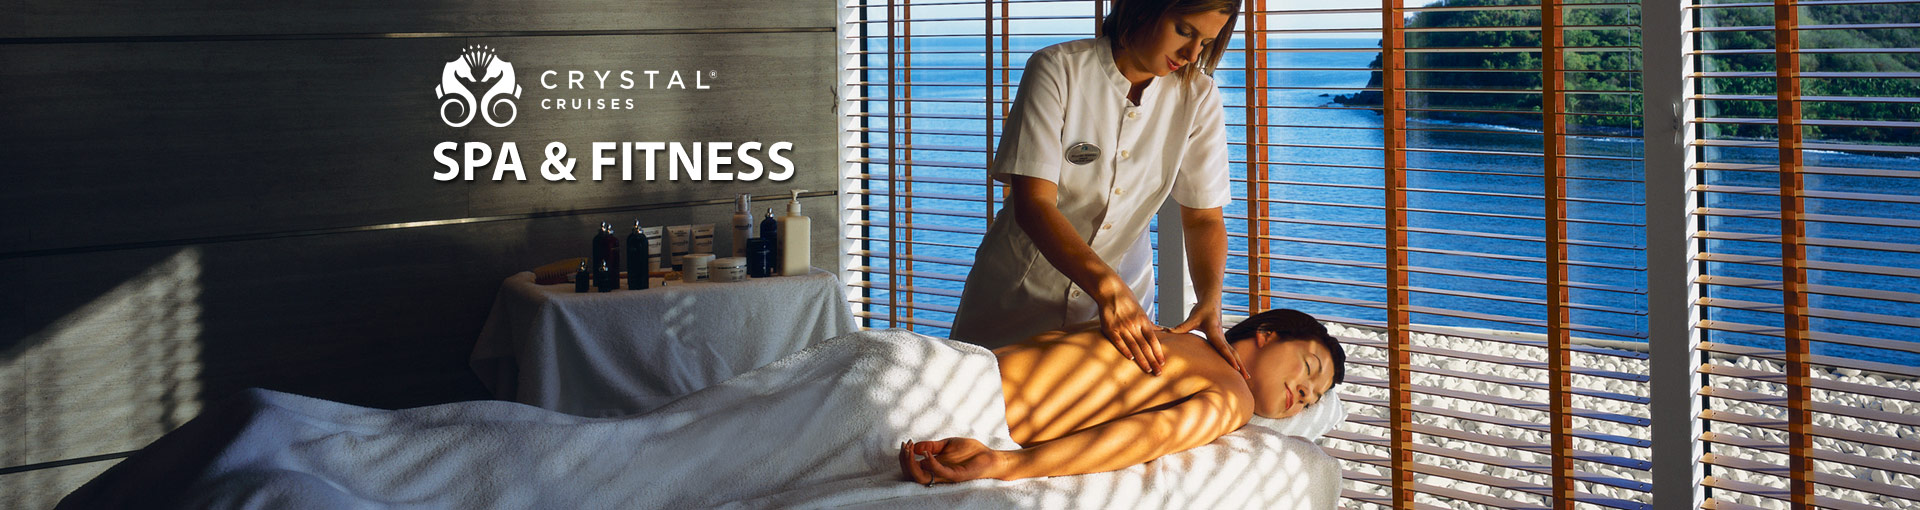 Crystal Cruises Spa & Fitness